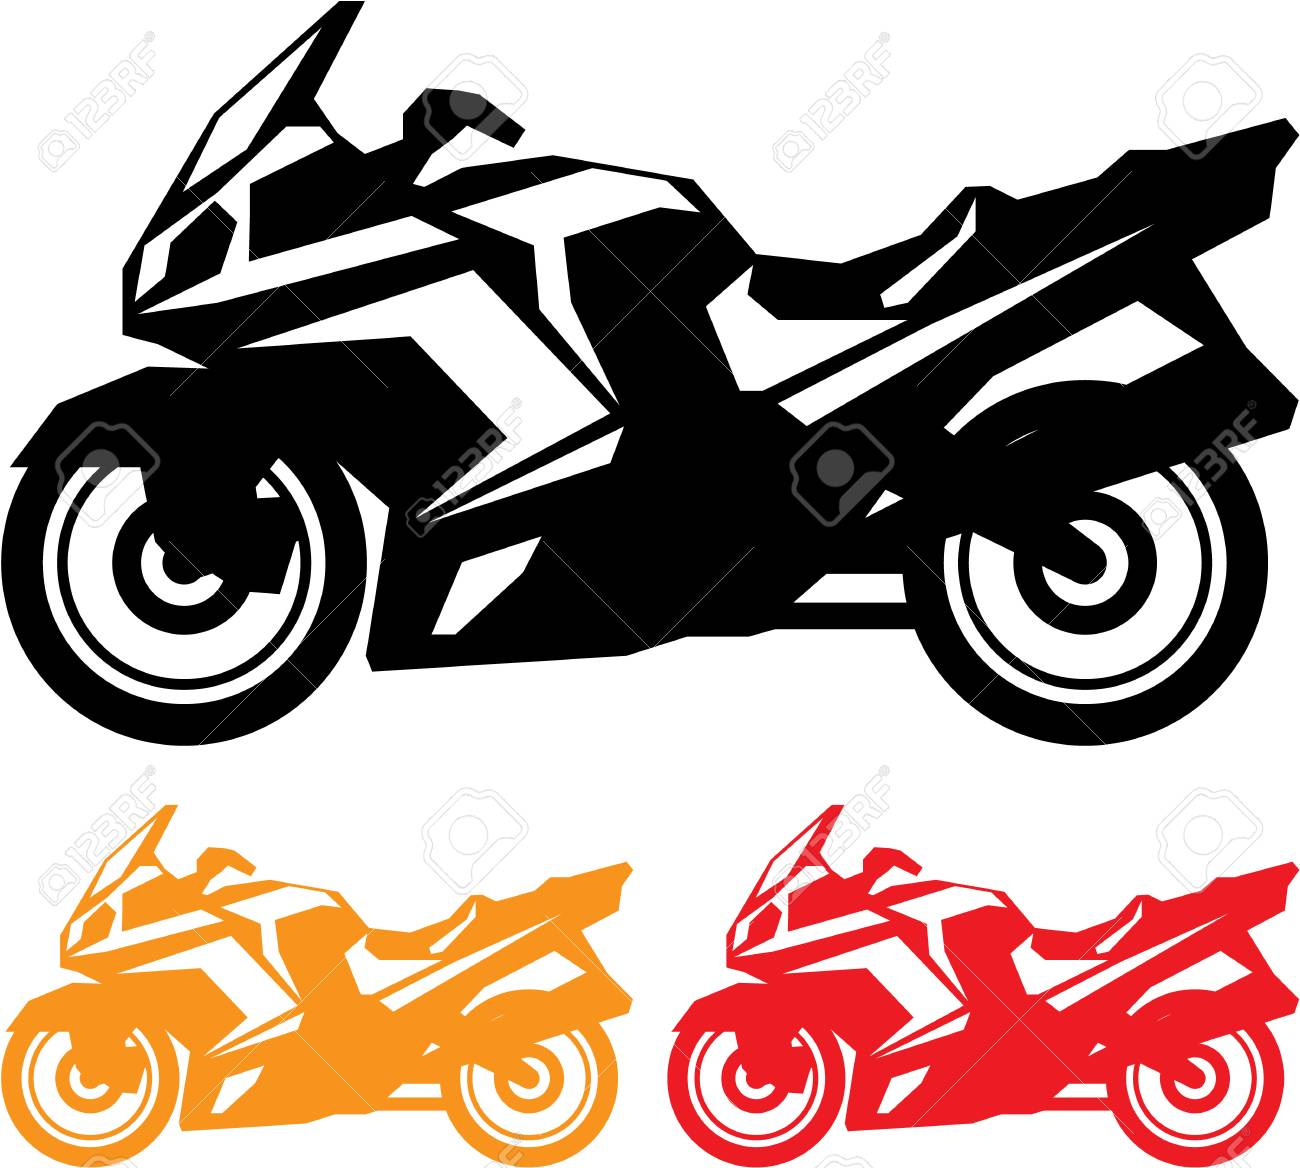 travel motorcycle vector illustration clip art image royalty free rh 123rf com motorcycle vector free motorcycle vector images